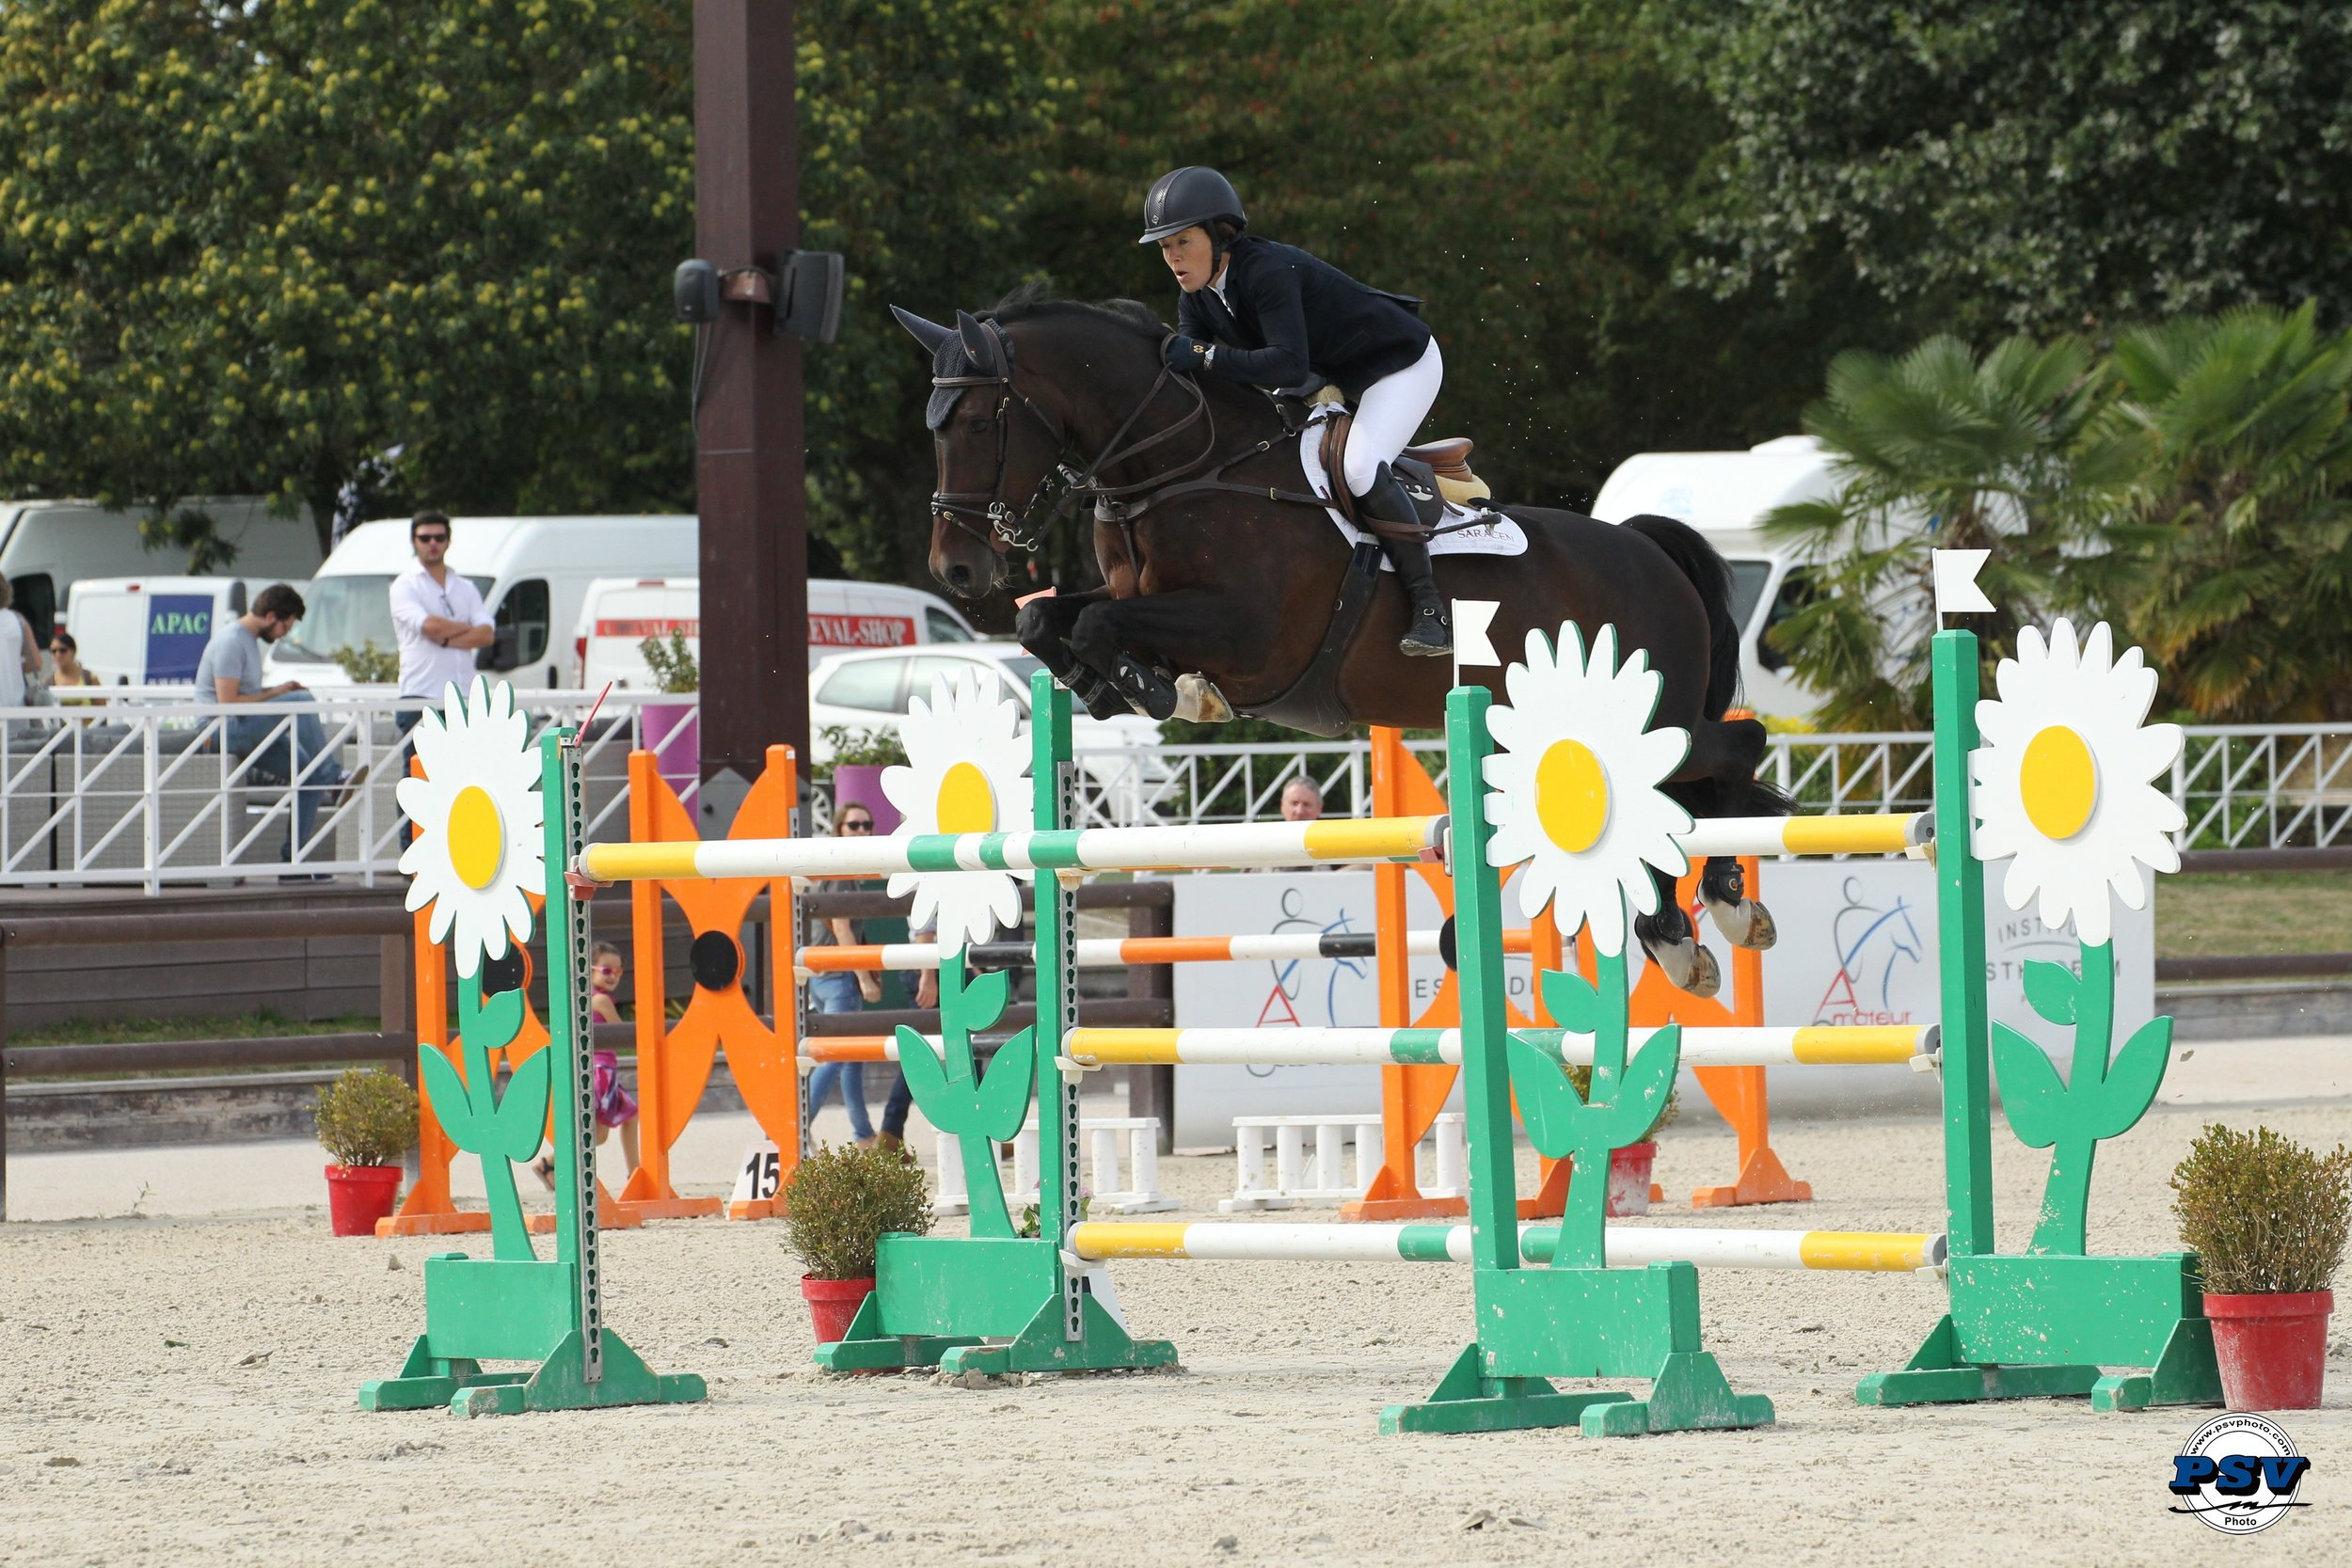 CSI2* Grand Prix Jardy - one stirrup